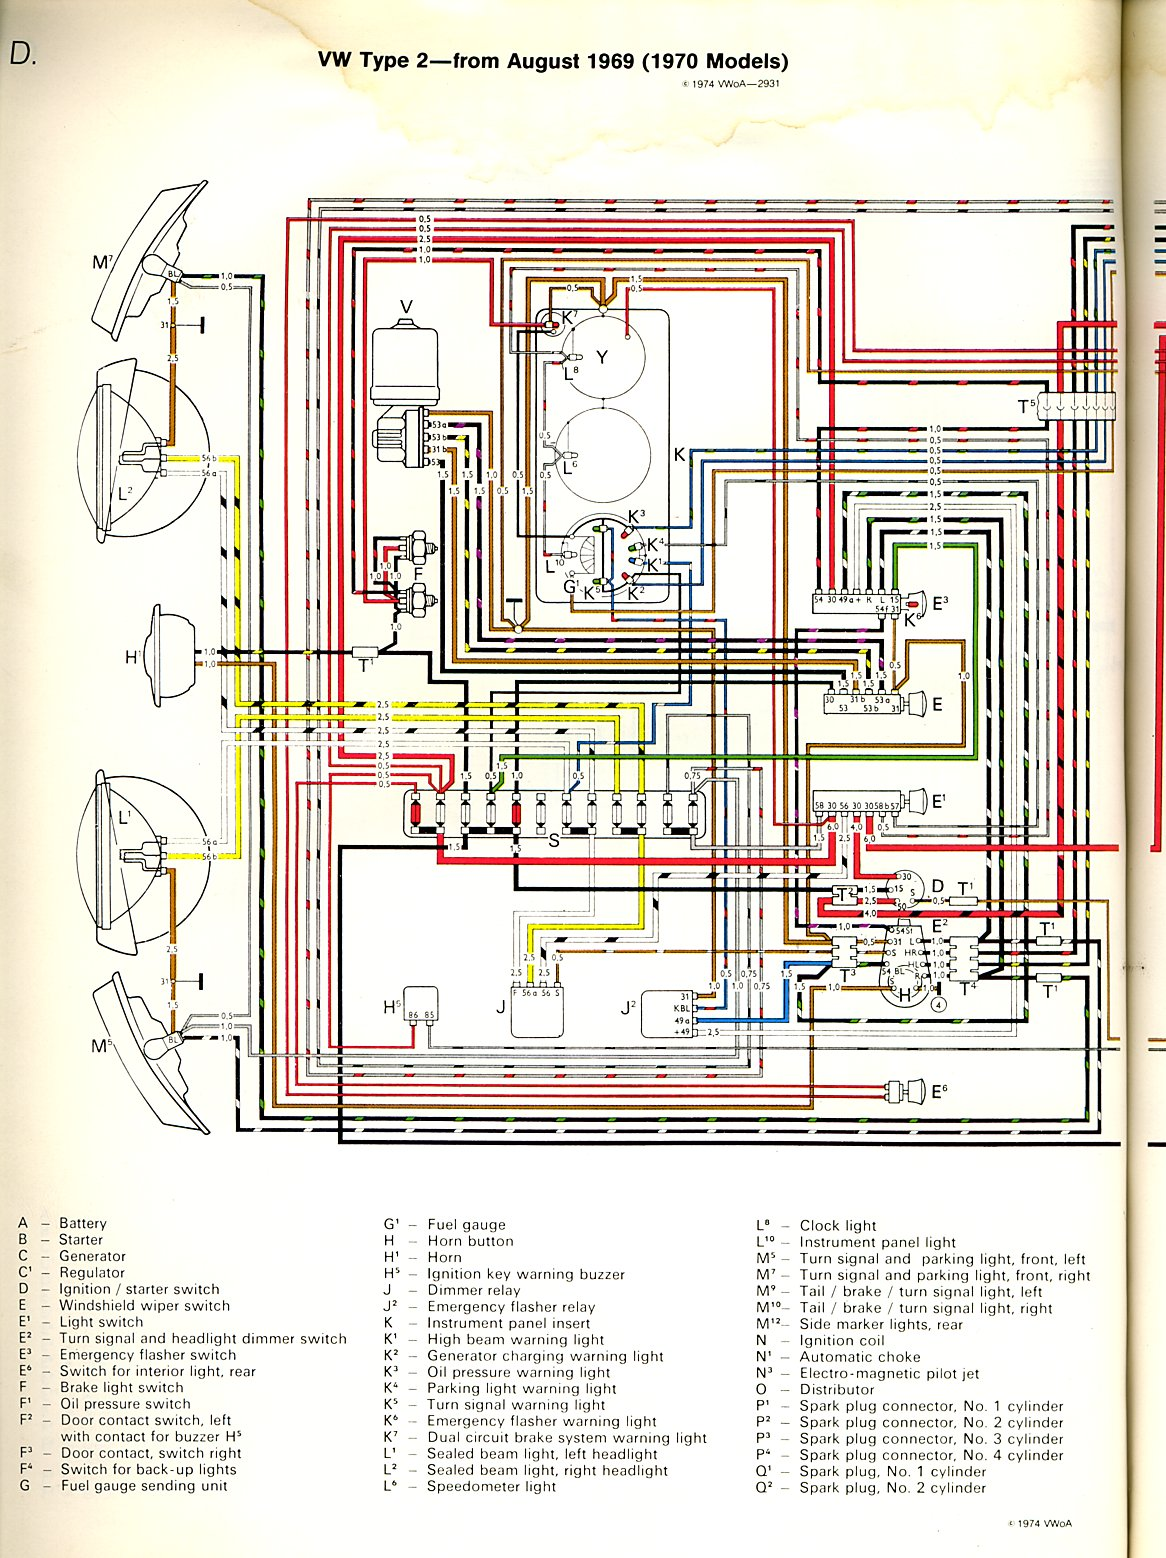 70 Vw Wiring Diagram Will Be A Thing Ktm 300 Starter Air Filter For 1971 Super Beetle Autos Post 1966